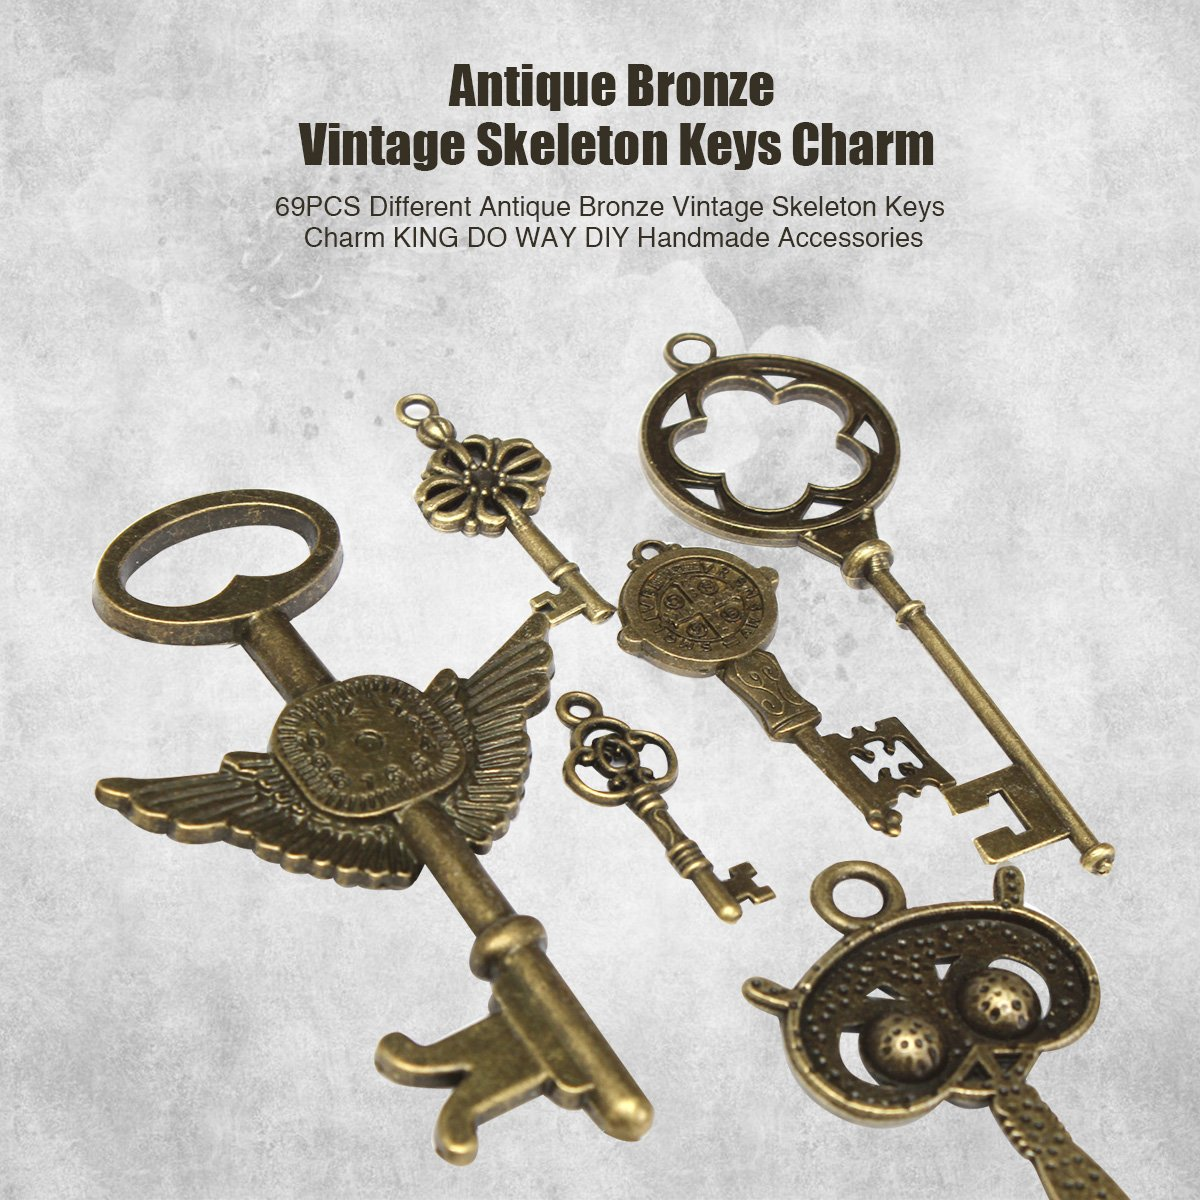 KING DO WAY 80pcs Antique Bronze Vintage Skeleton Keys Charm Set DIY Handmade Accessories Necklace Pendants Jewelry Making Supplies for Wedding Decoration Birthday and Christmas Party